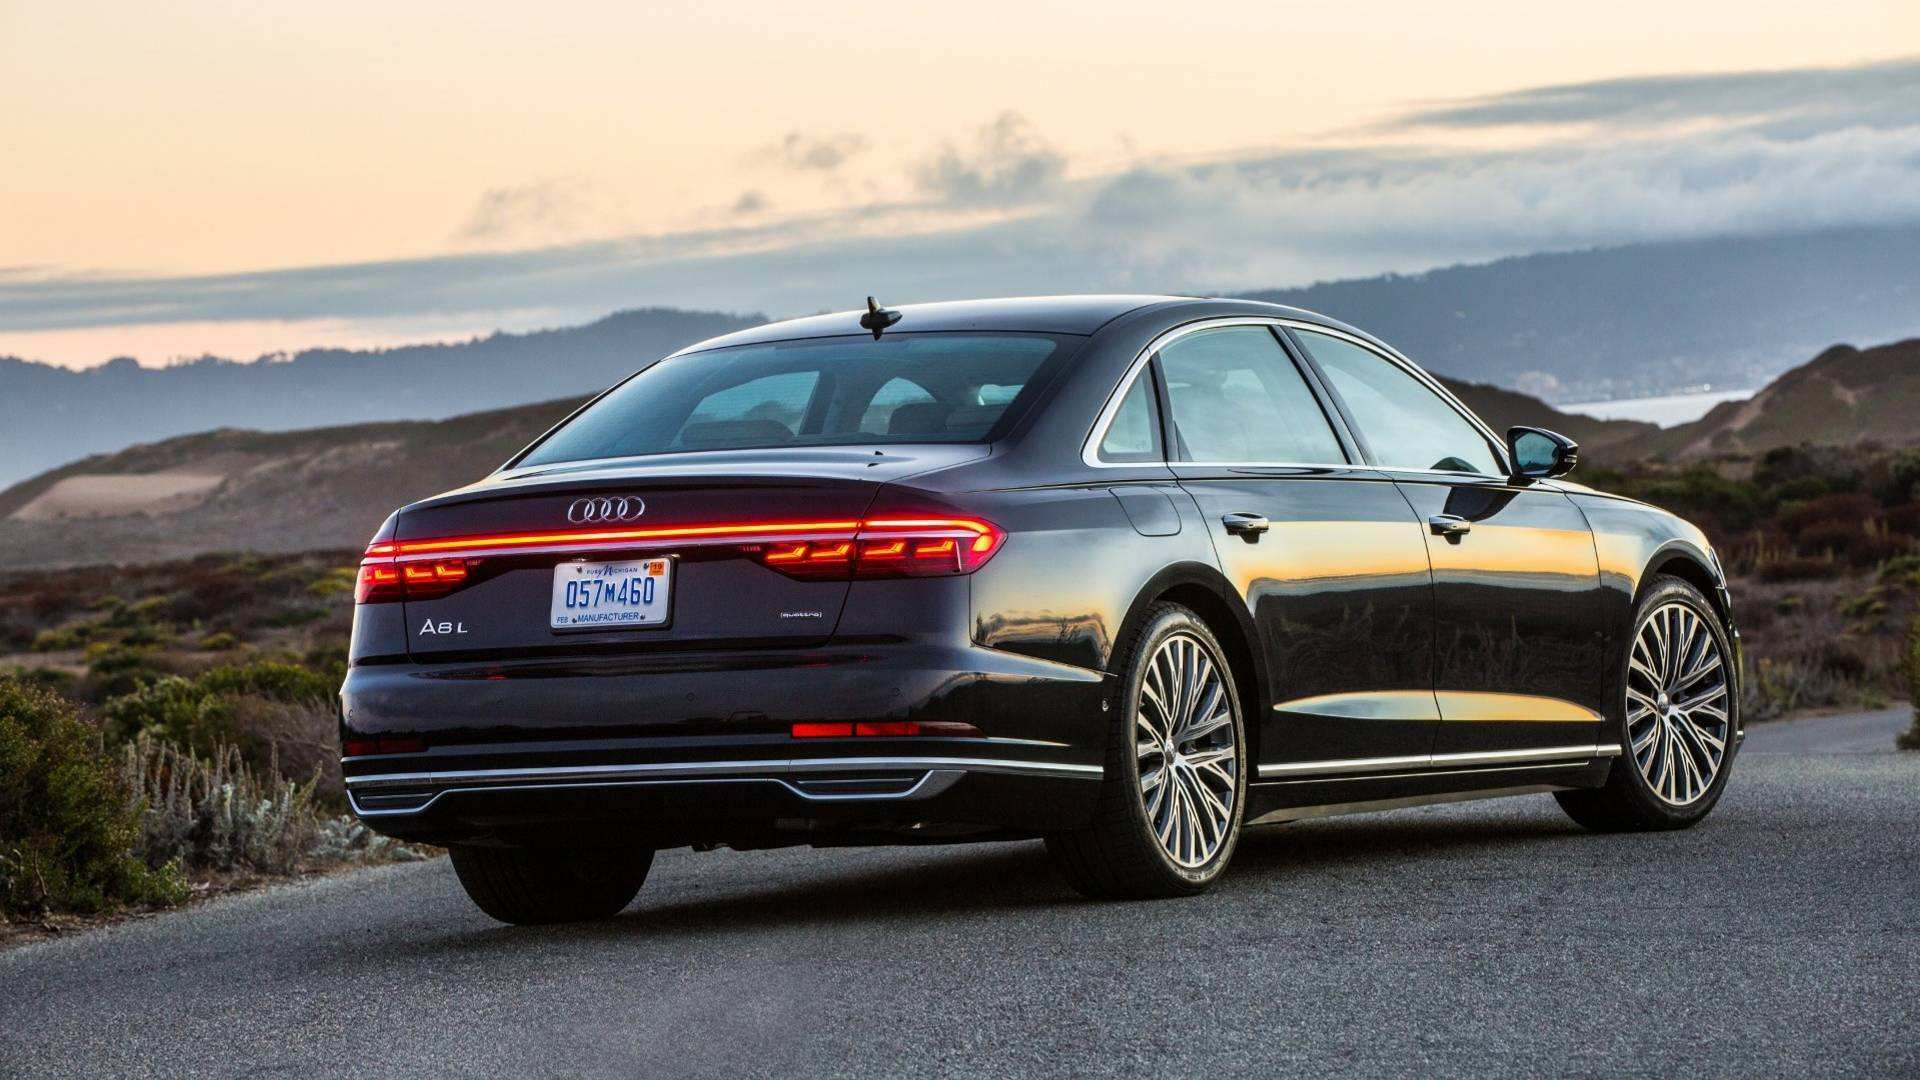 99 A 2019 Audi A8 L In Usa History